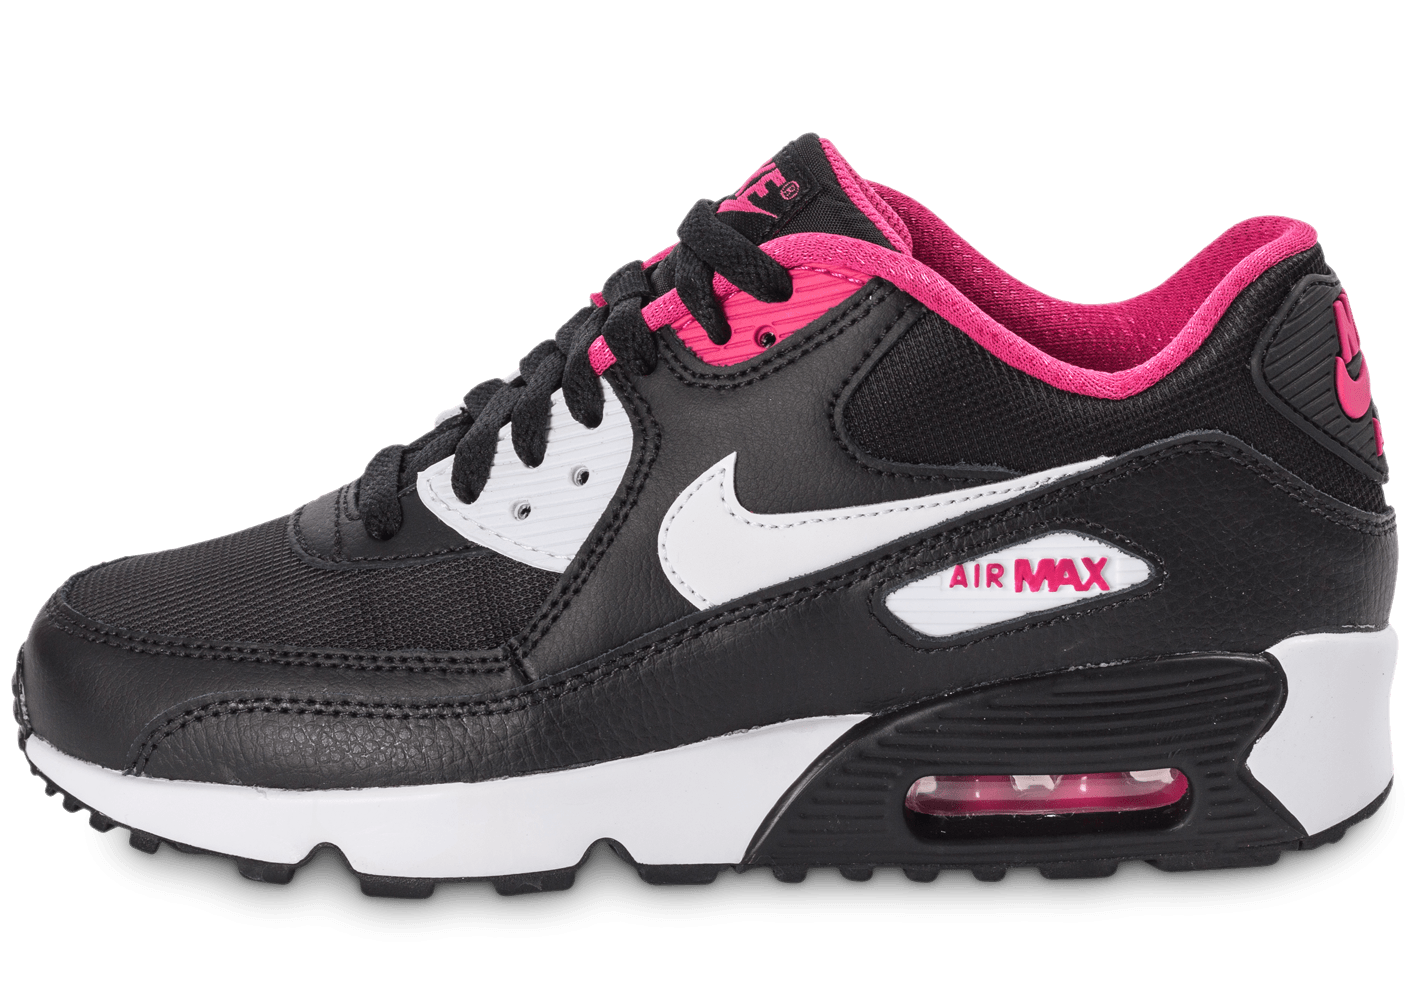 save off 713e5 2ec5a Nike Air Max 90 Mesh Junior noir et rose - Chaussures Enfant - Chausport